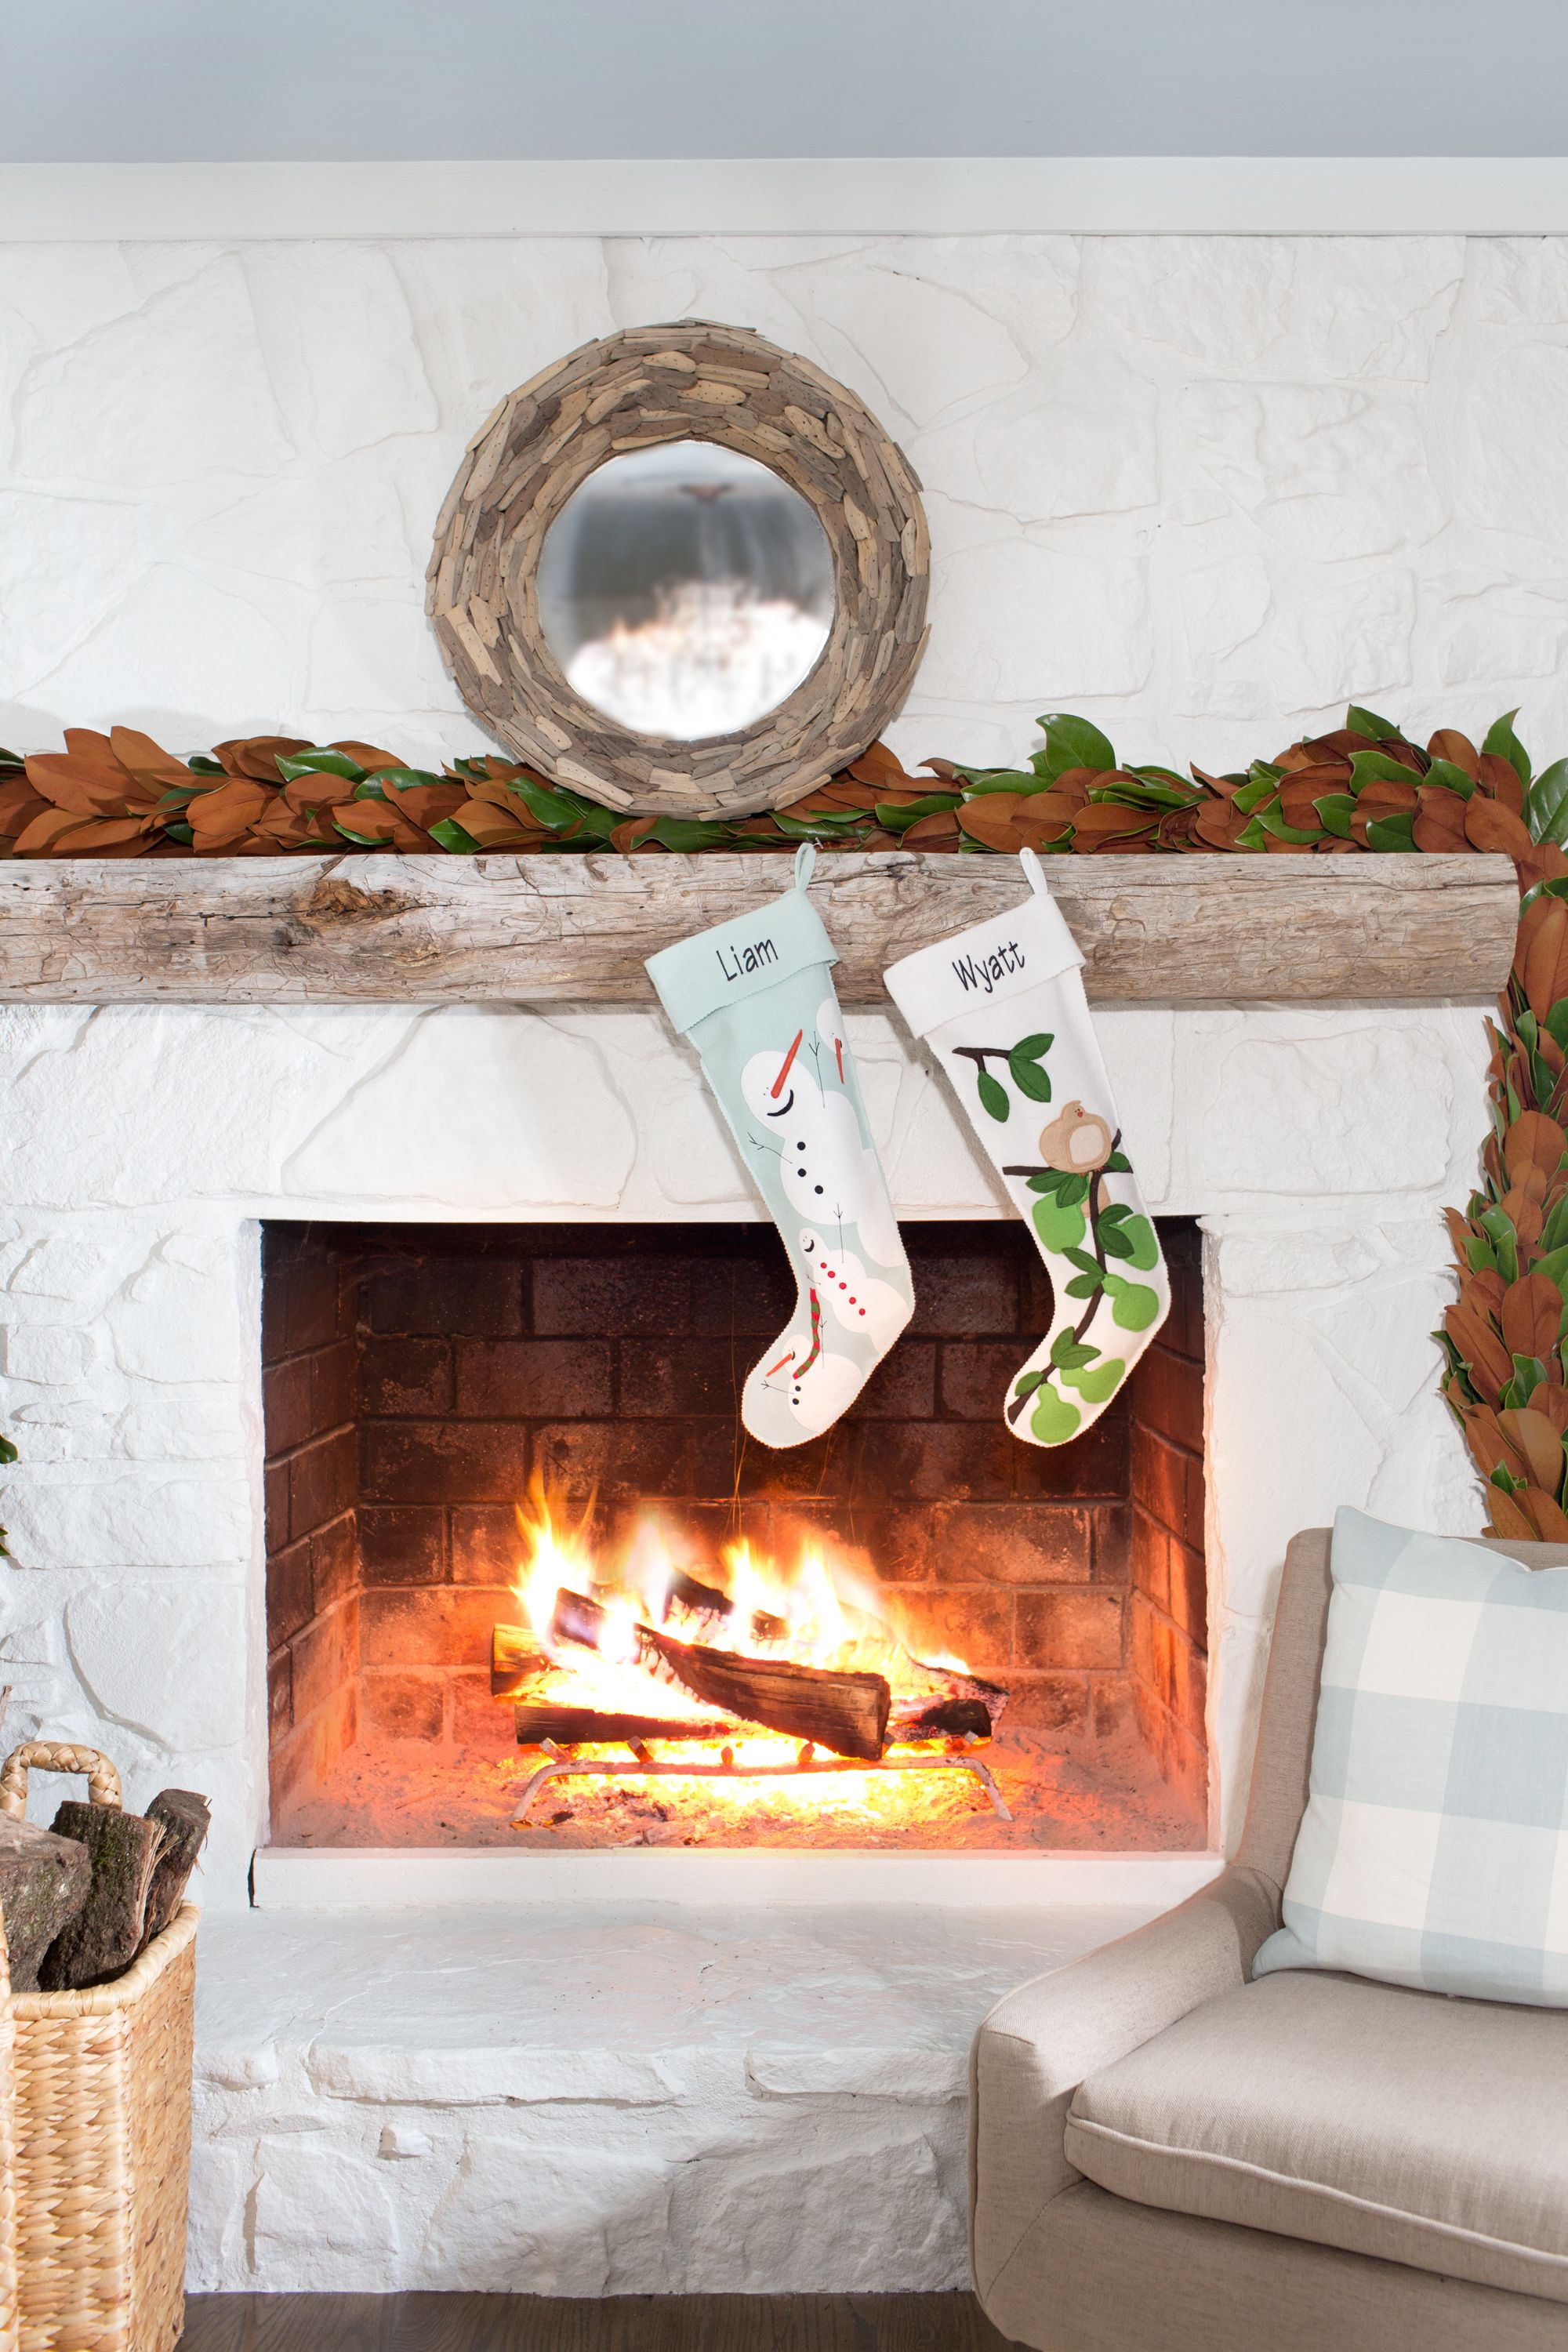 stocking together in on fireplace inspiration christmas captivating mg decoration with stockings holders